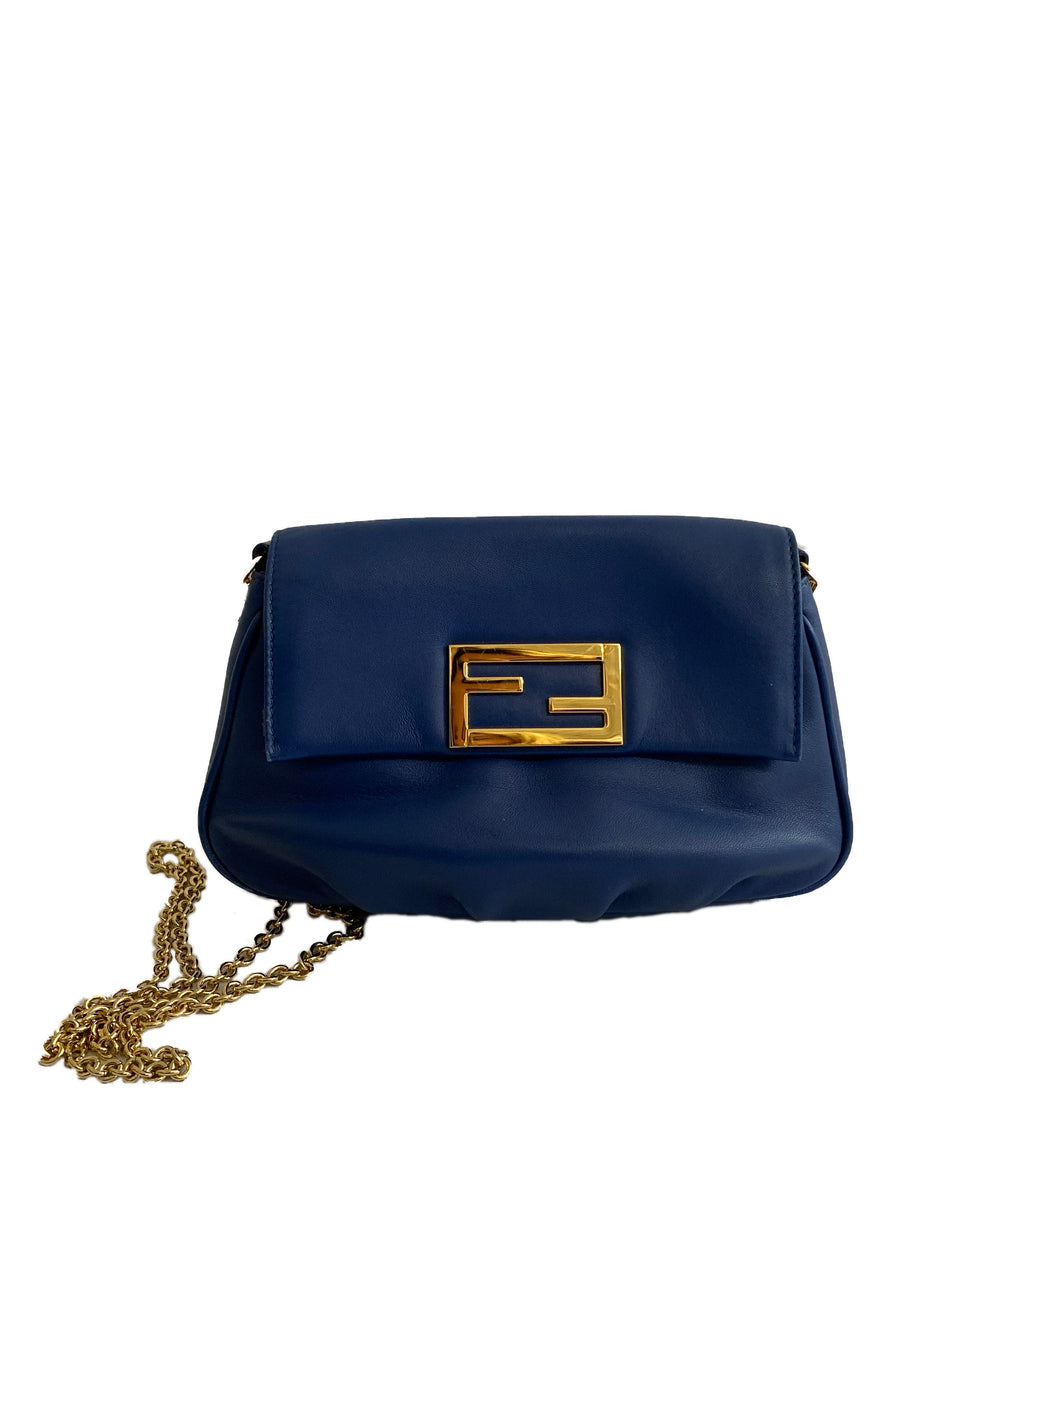 Fendi Crossbody Bag